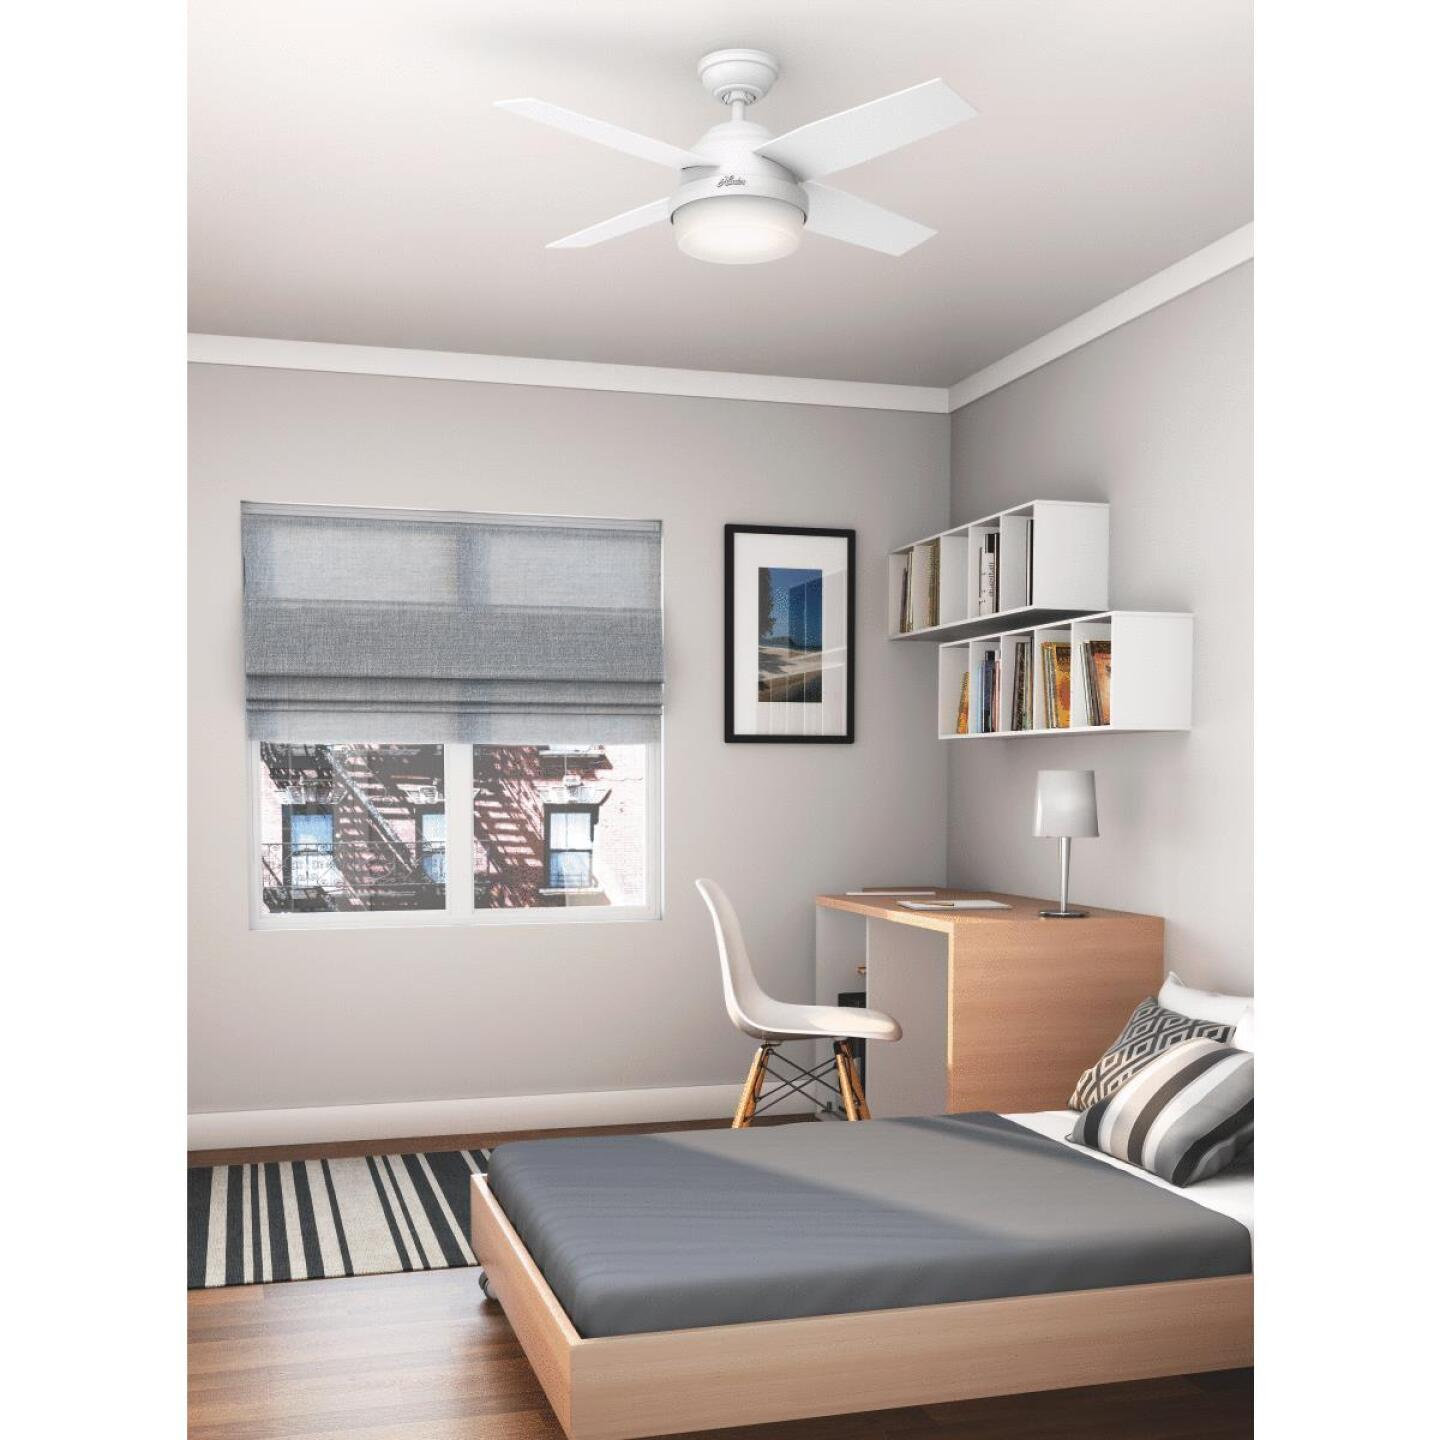 Hunter Dempsey 44 In. Fresh White Ceiling Fan with Light Kit Image 3